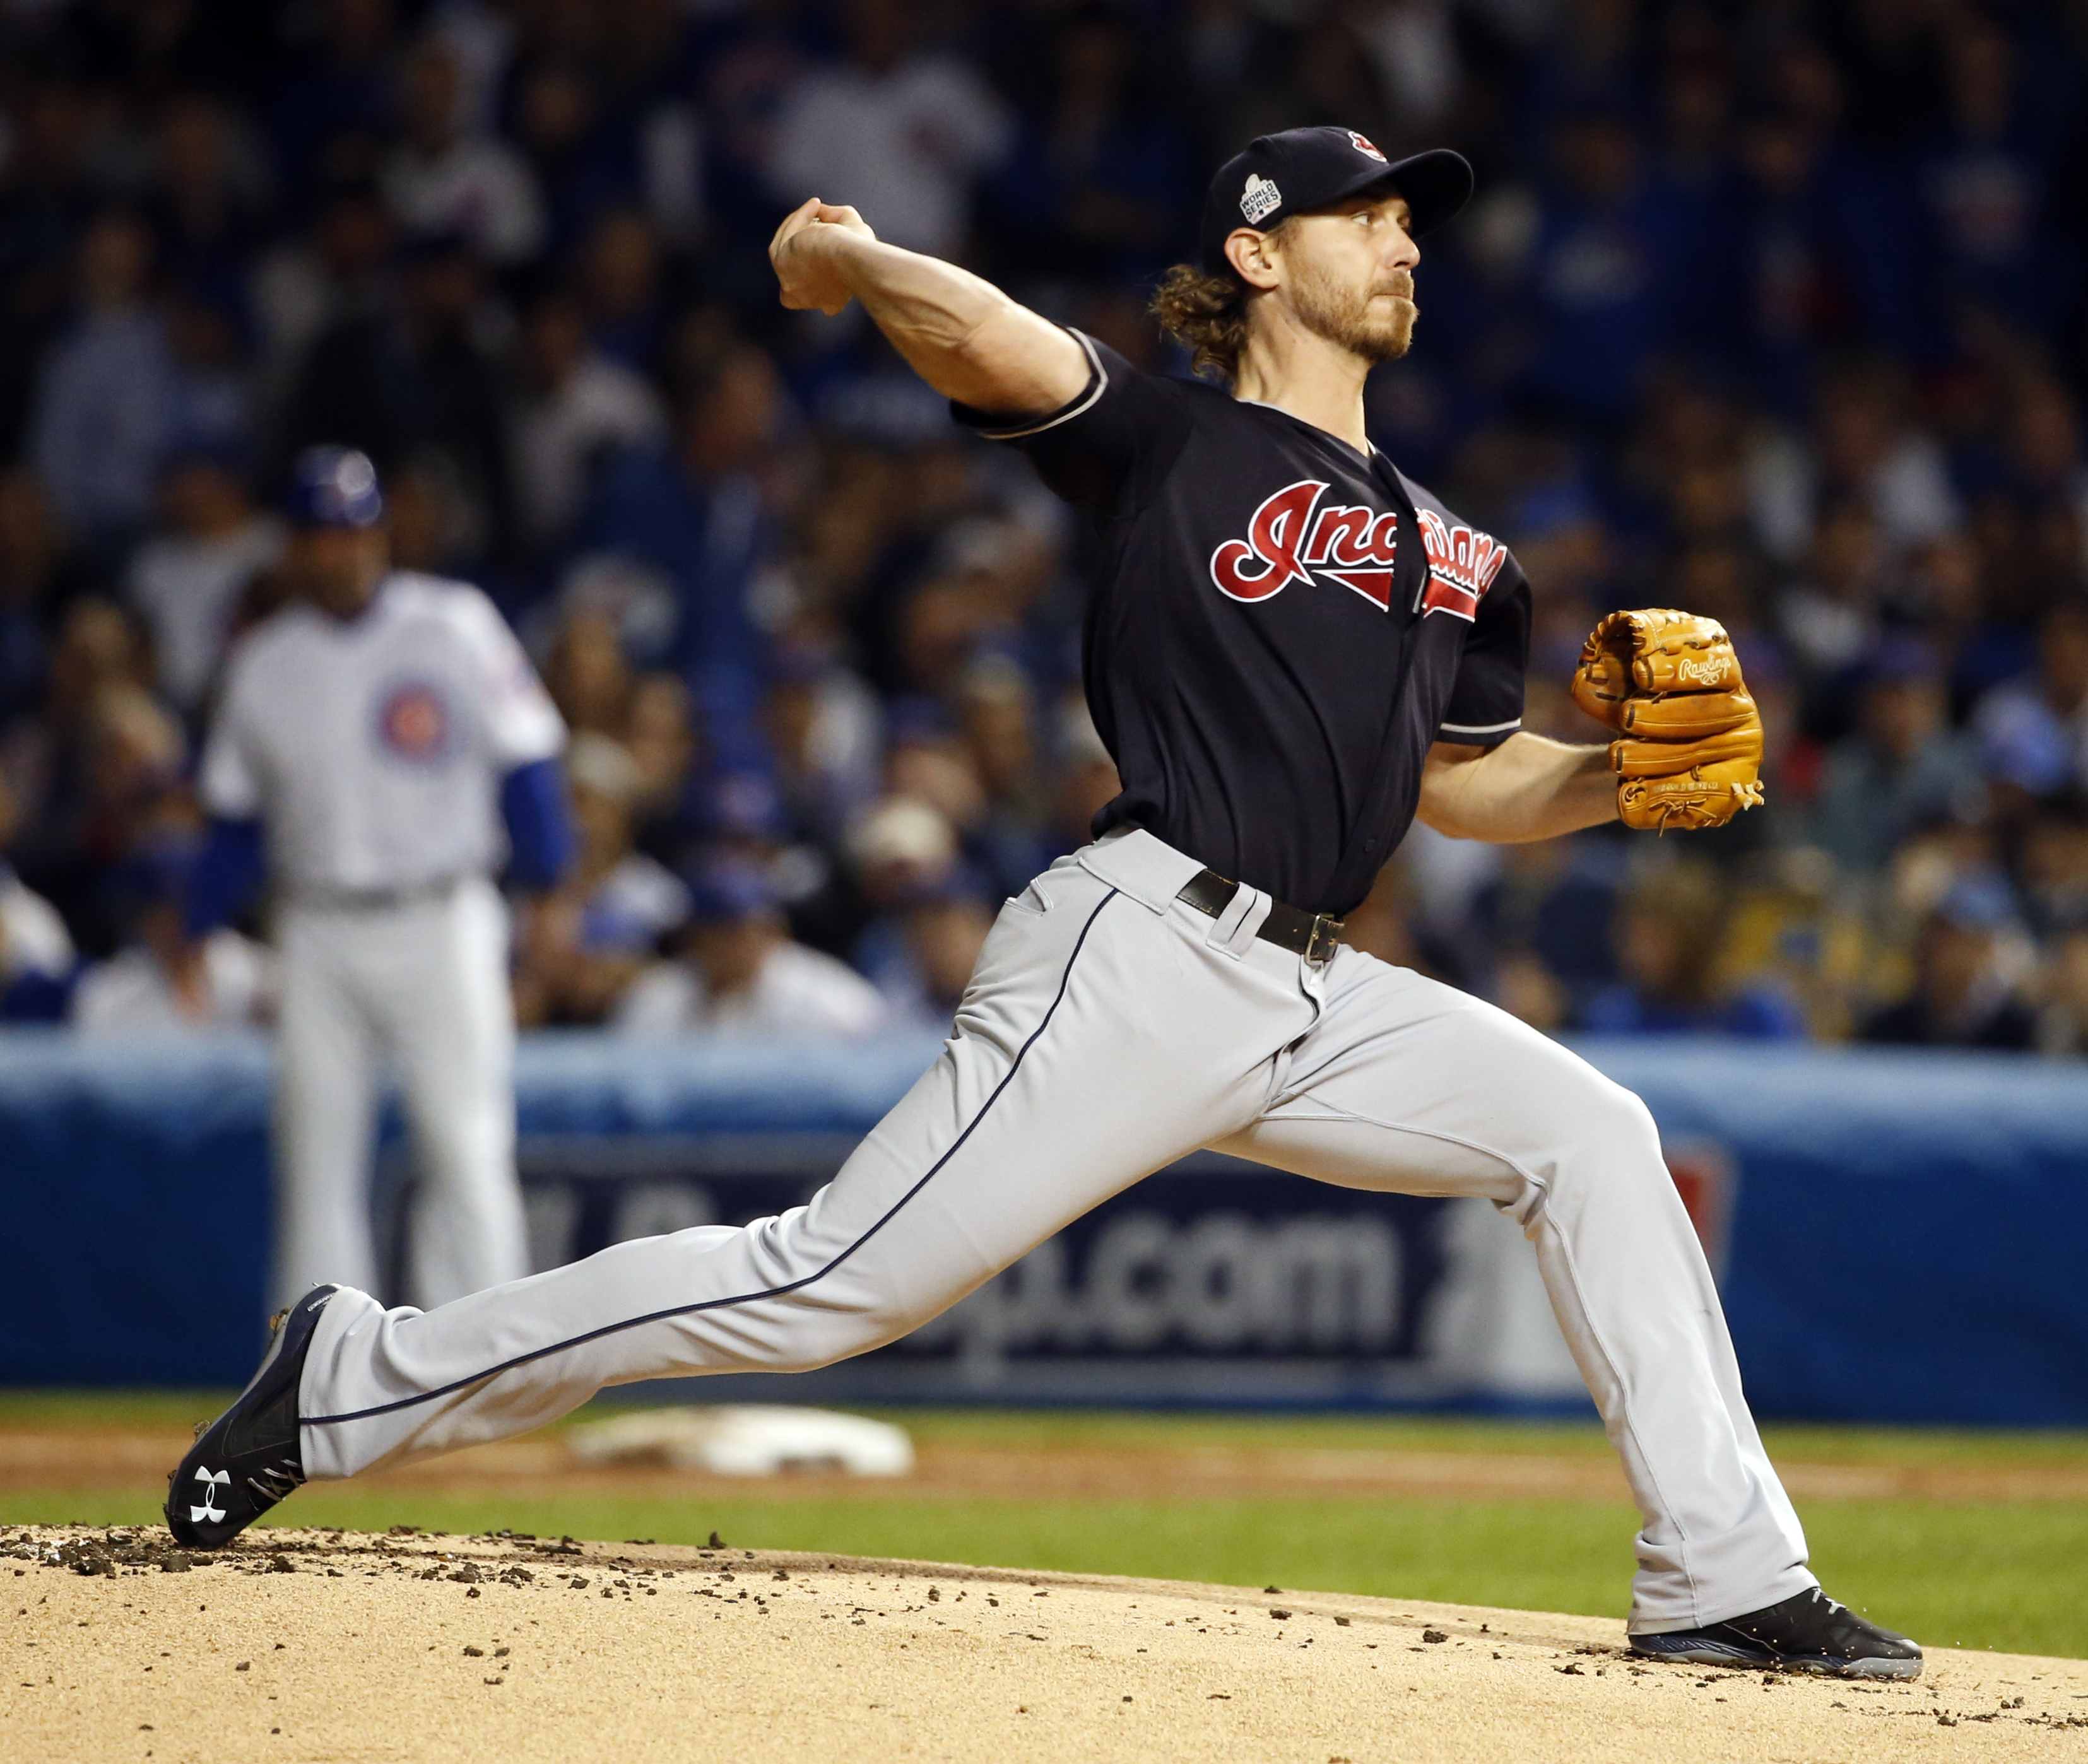 Cleveland Indians starting pitcher Josh Tomlin (43) throws during the first inning of Game 3 of the Major League Baseball World Series against the Chicago Cubs, Friday, Oct. 28, 2016, in Chicago. (AP Photo/Nam Y. Huh)